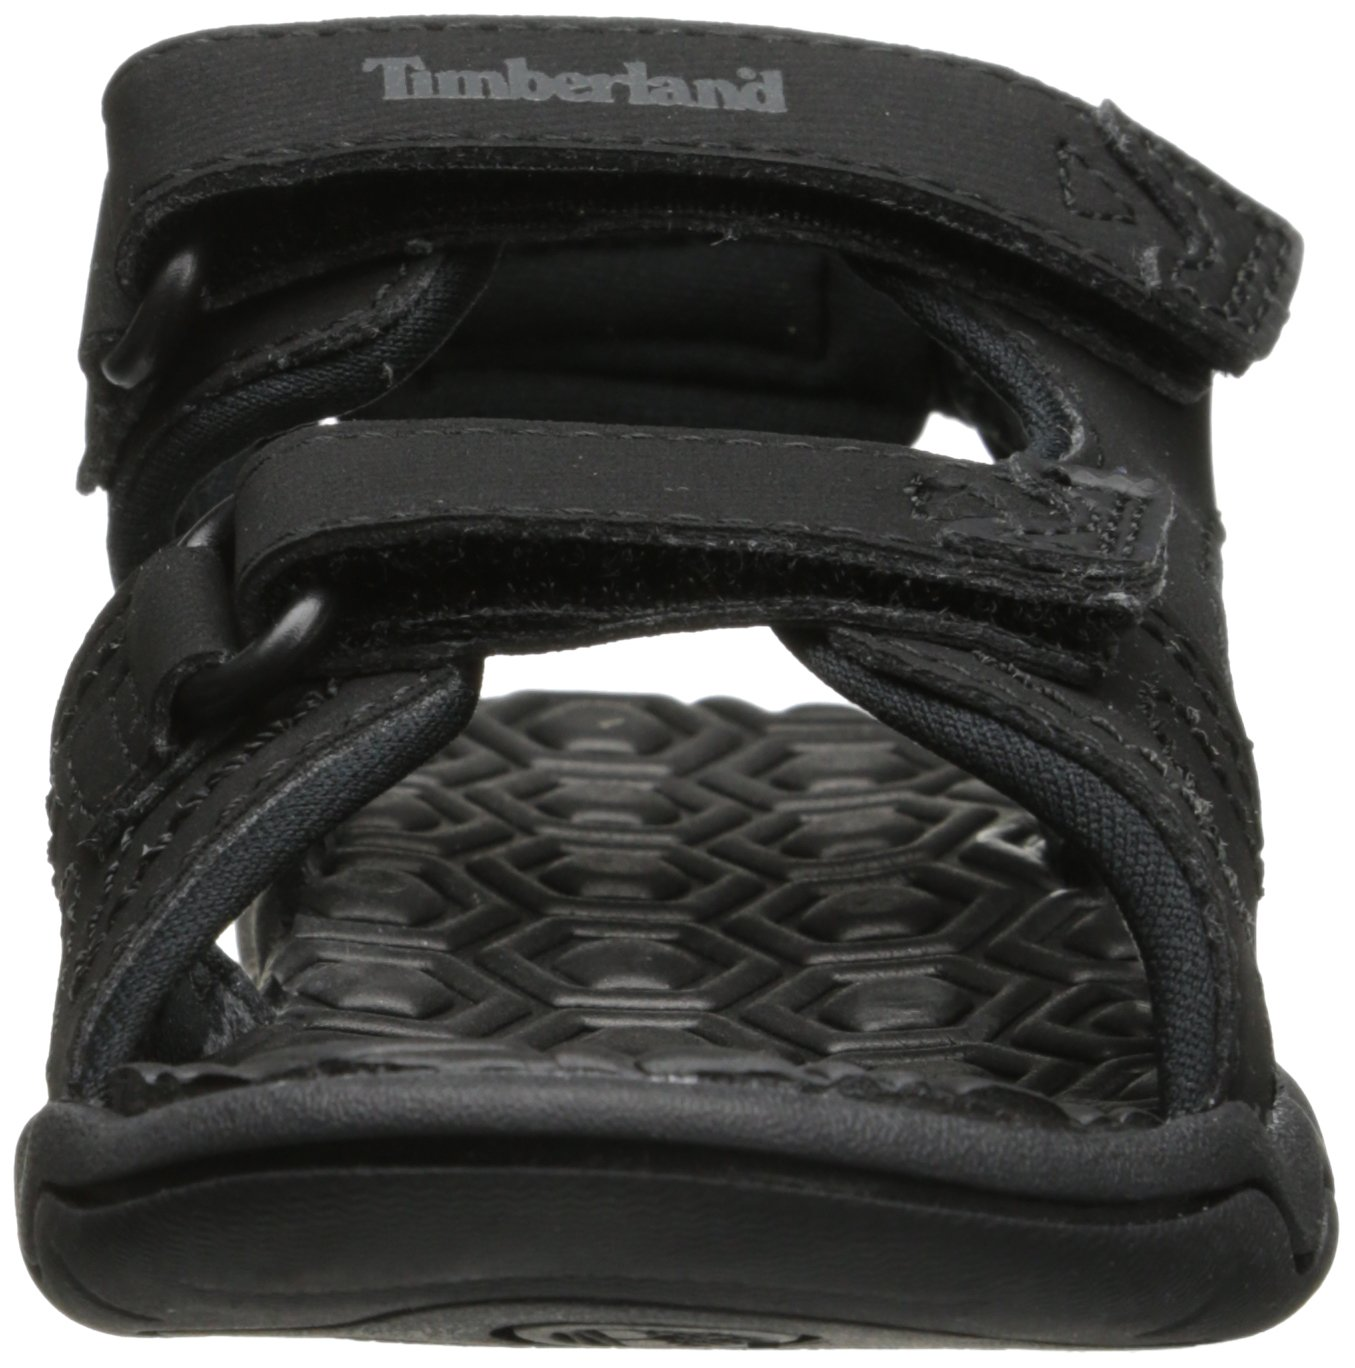 Timberland Adventure Seeker Two-Strap Sandal (Toddler/Little Kid),Blackout,9 M US Toddler by Timberland (Image #4)